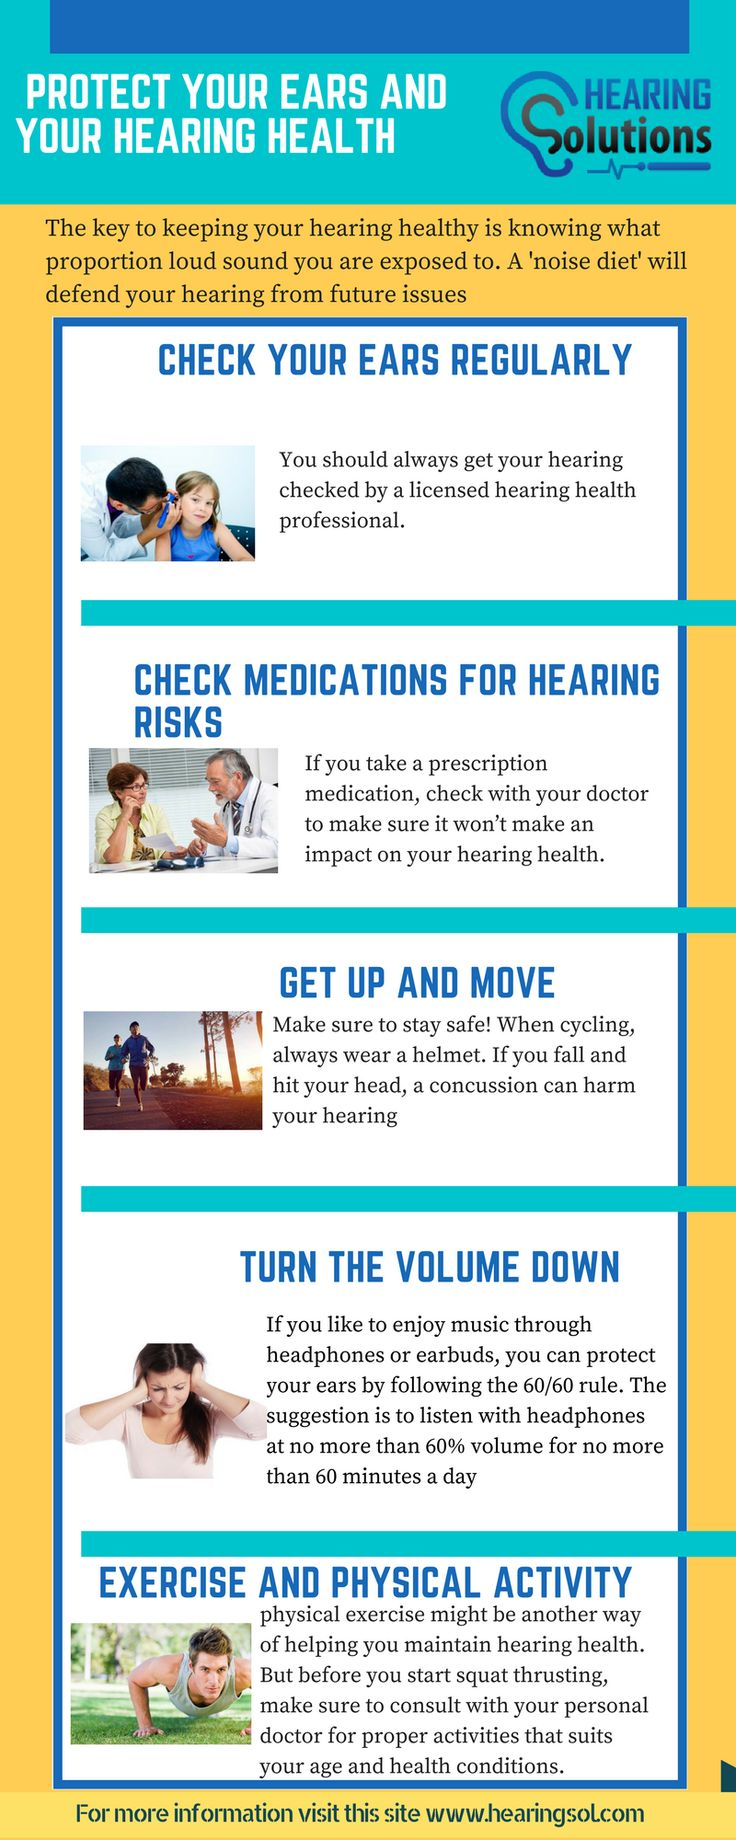 By using the hearing protection you can protect your hearing. Some of the hearing protections are earplugs or earmuffs. You can protect your hearing in various ways such as turn the volume down, keep your ears dry, quit smoking, manage stress level etc. For more visit:- https://www.hearingsol.com